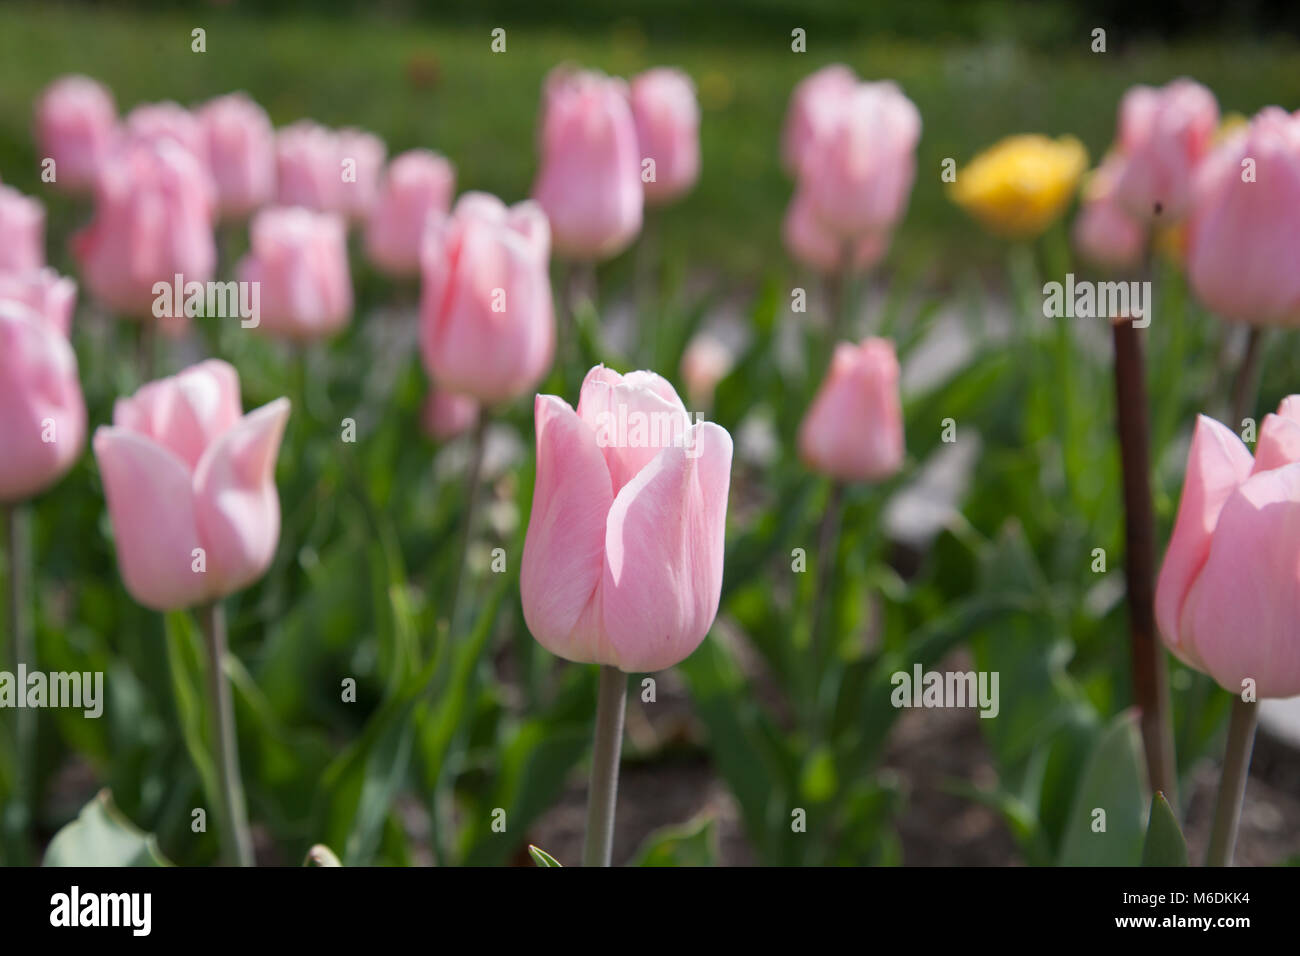 'Apricot Beauty' Single Early Tulip, Tidig enkel tulpan (Tulipa gesneriana) - Stock Image